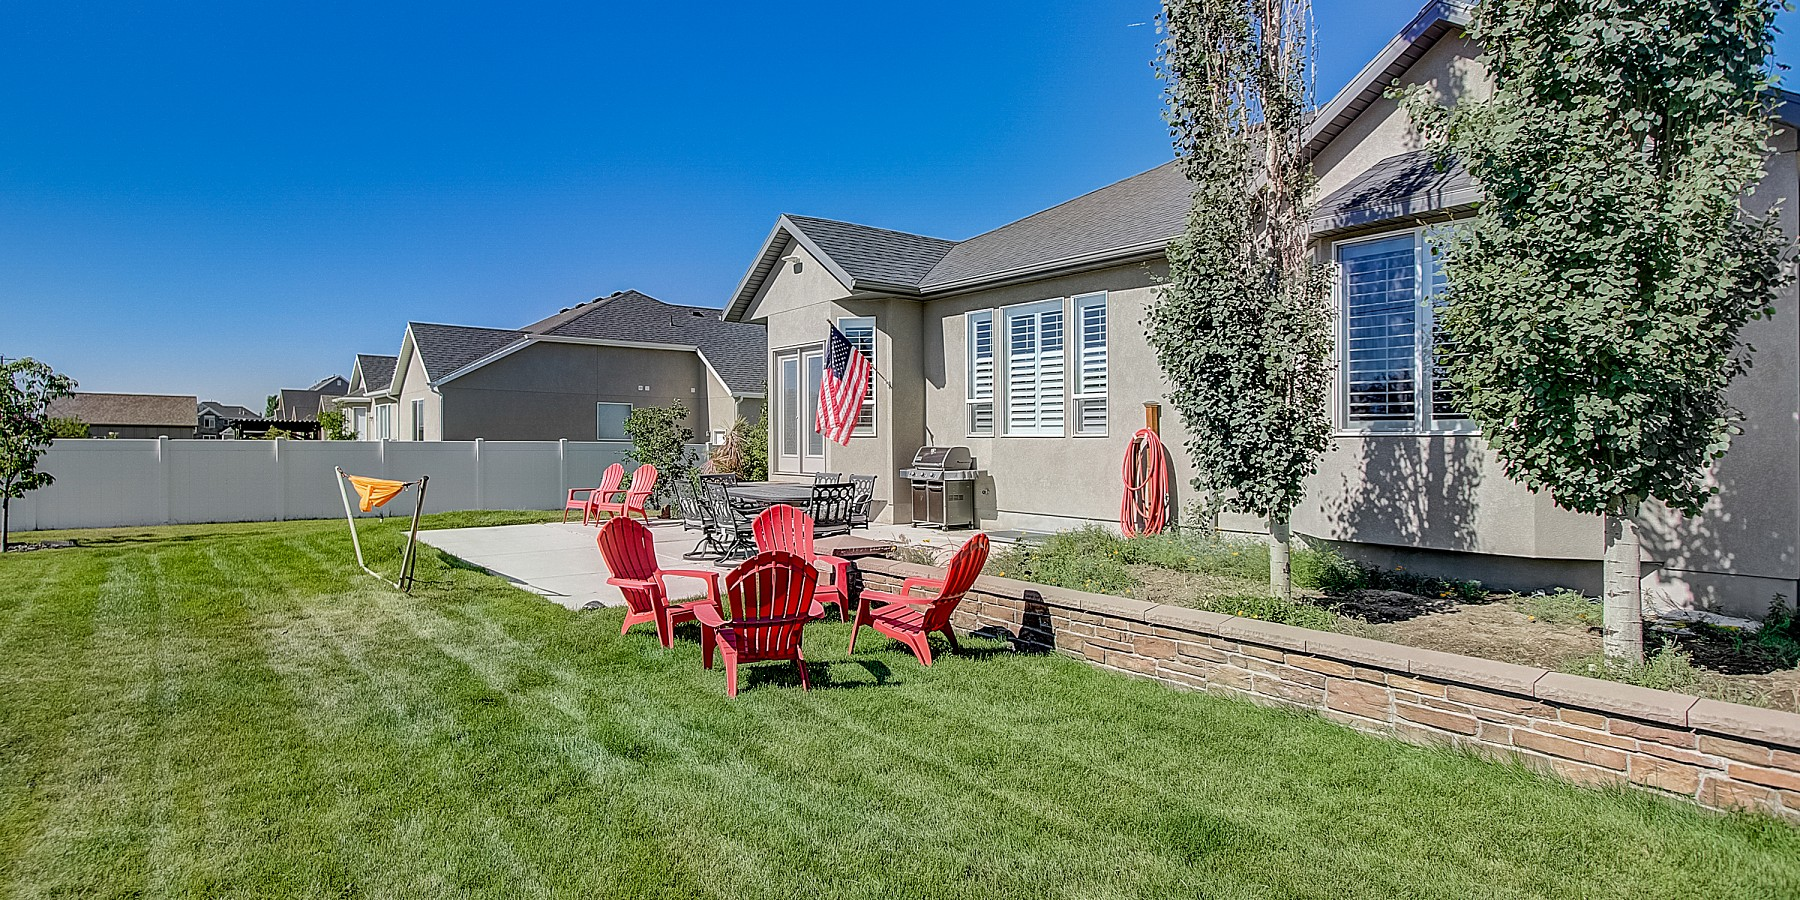 2950 North 50 West, Lehi, UT 84043